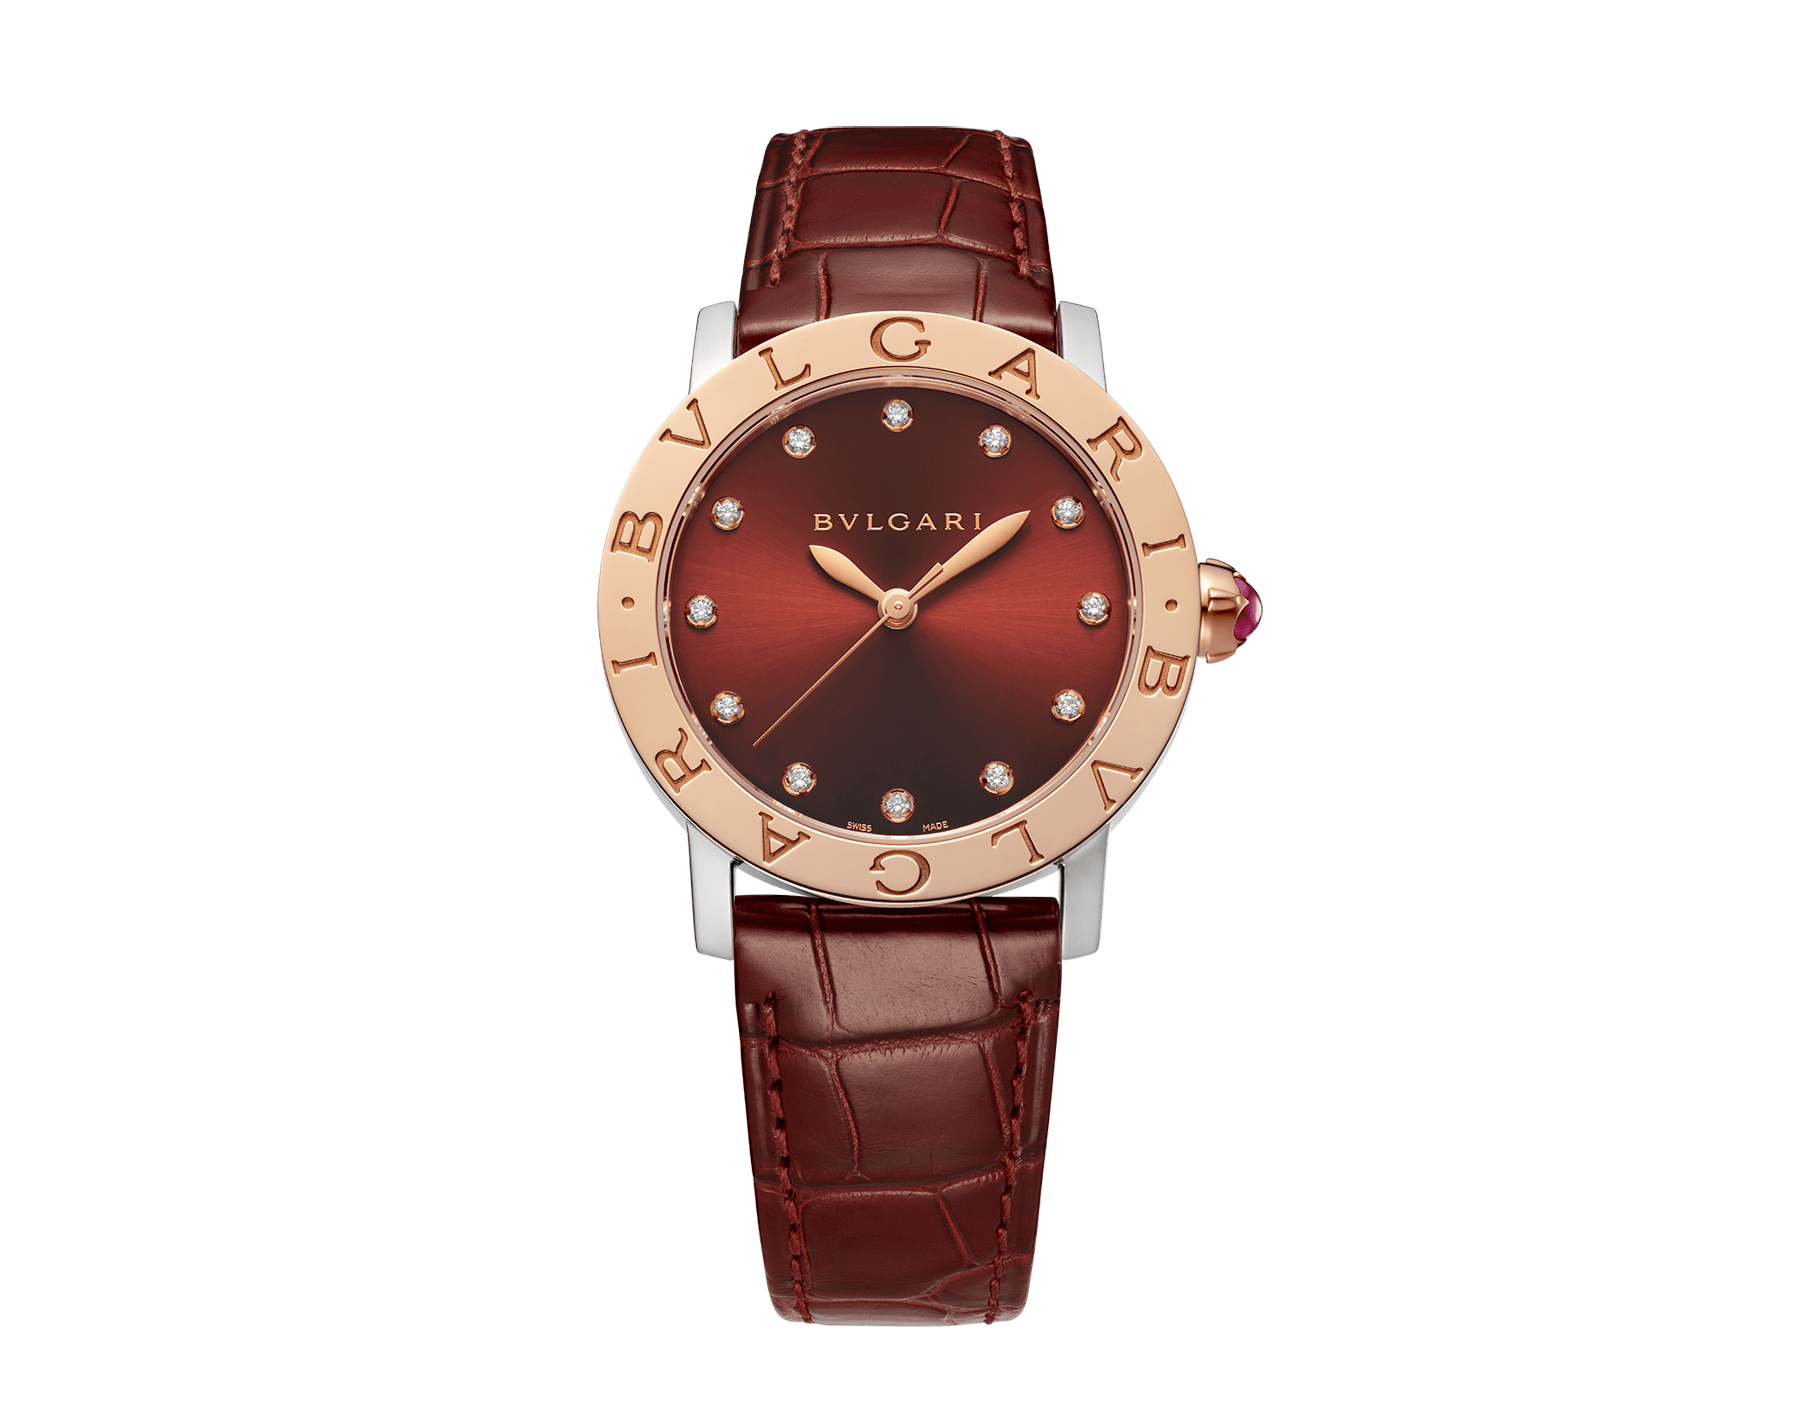 BVLGARI BVLGARI watch with stainless steel case, 18 kt rose gold bezel, brown satiné soleil lacquered dial, golden diamond indexes and shiny dark brown alligator bracelet 102742 image 1